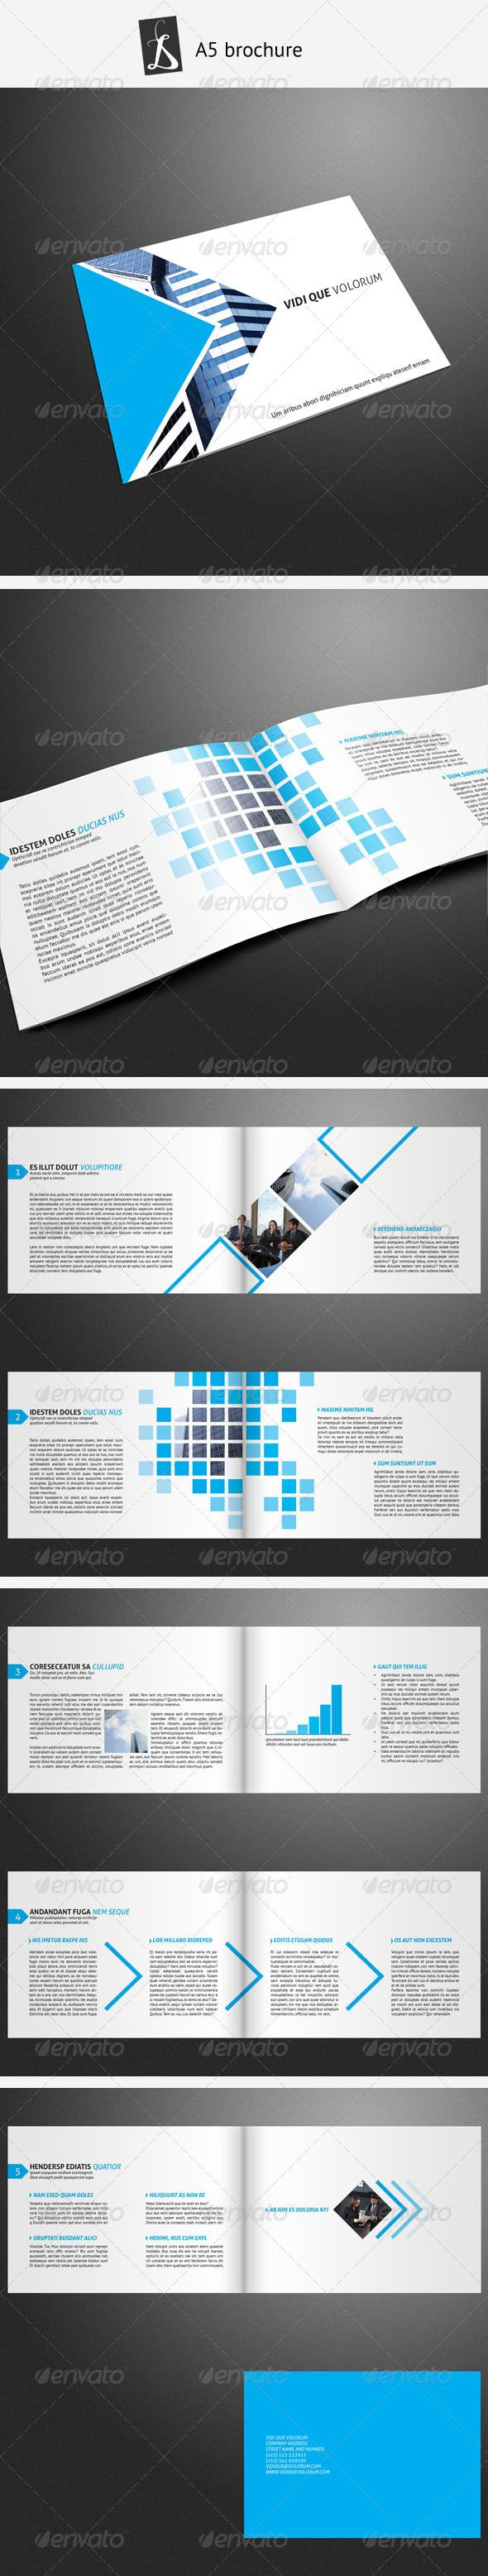 A5 brochure 7 - GraphicRiver Item for Sale